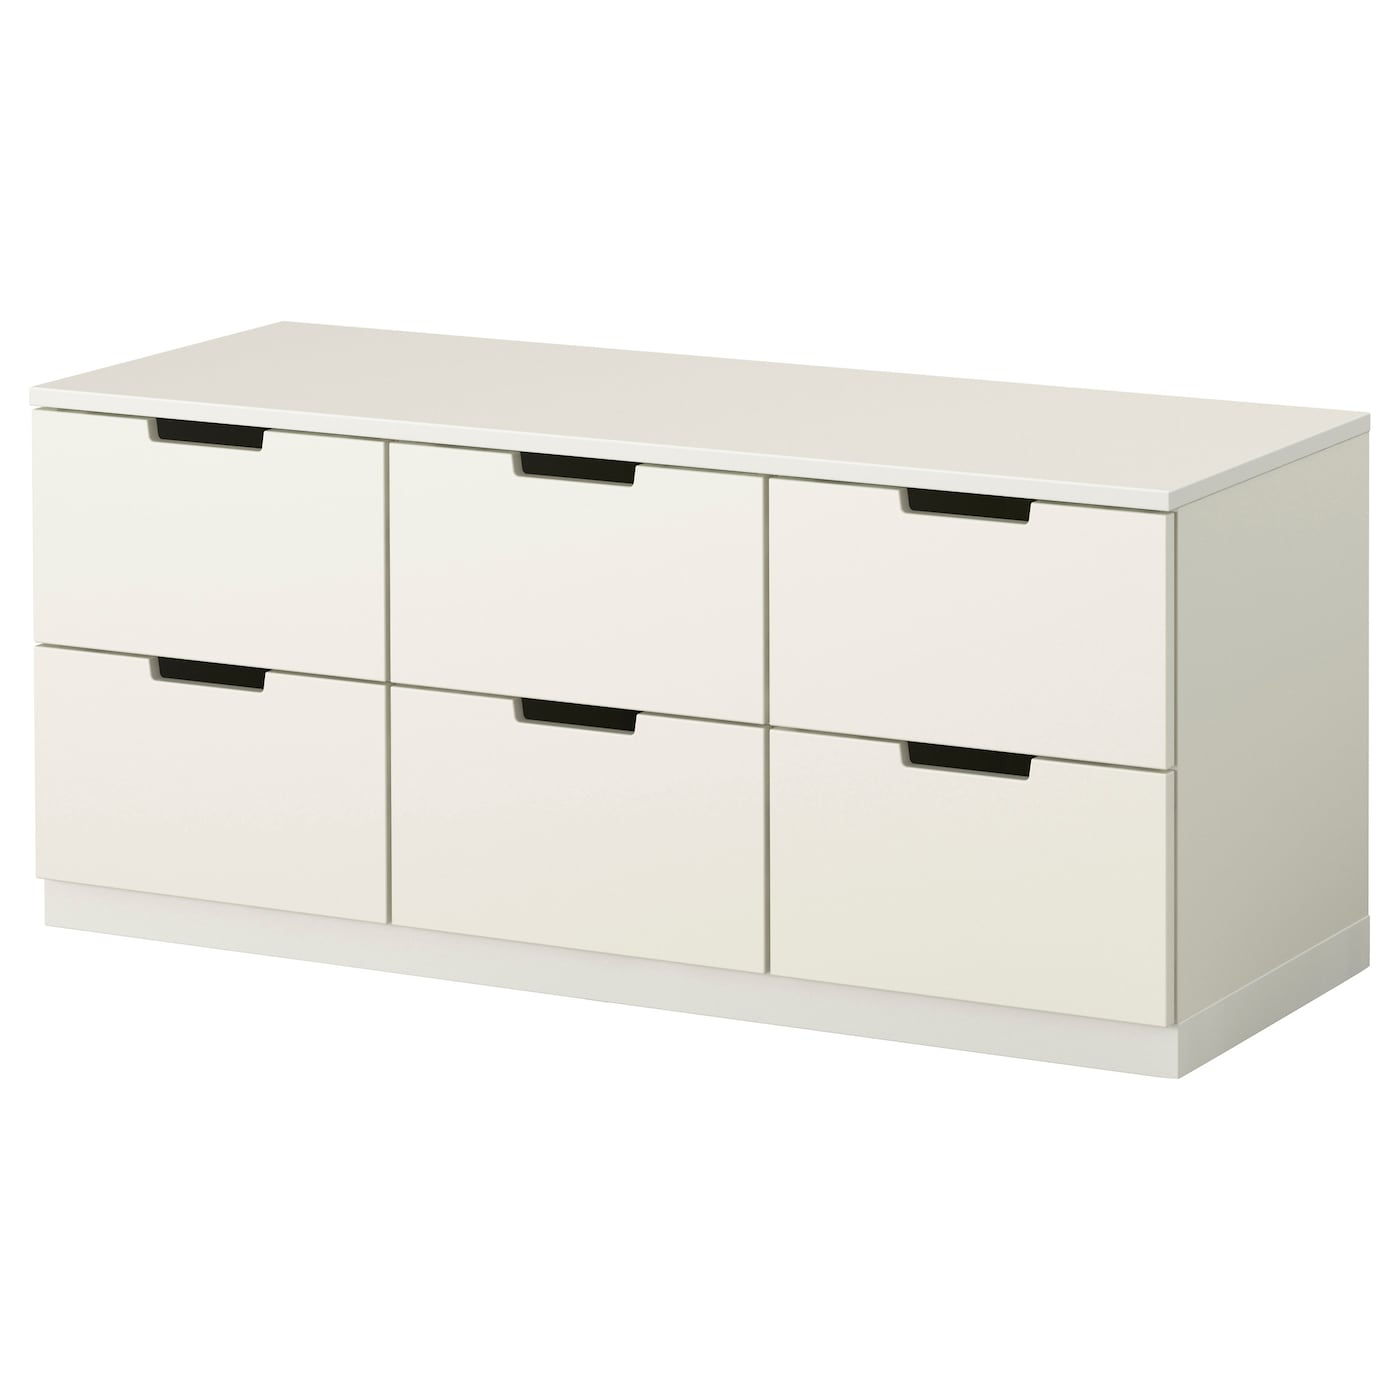 Nordli chest of 6 drawers white 120x52 cm ikea for Sideboard 1m